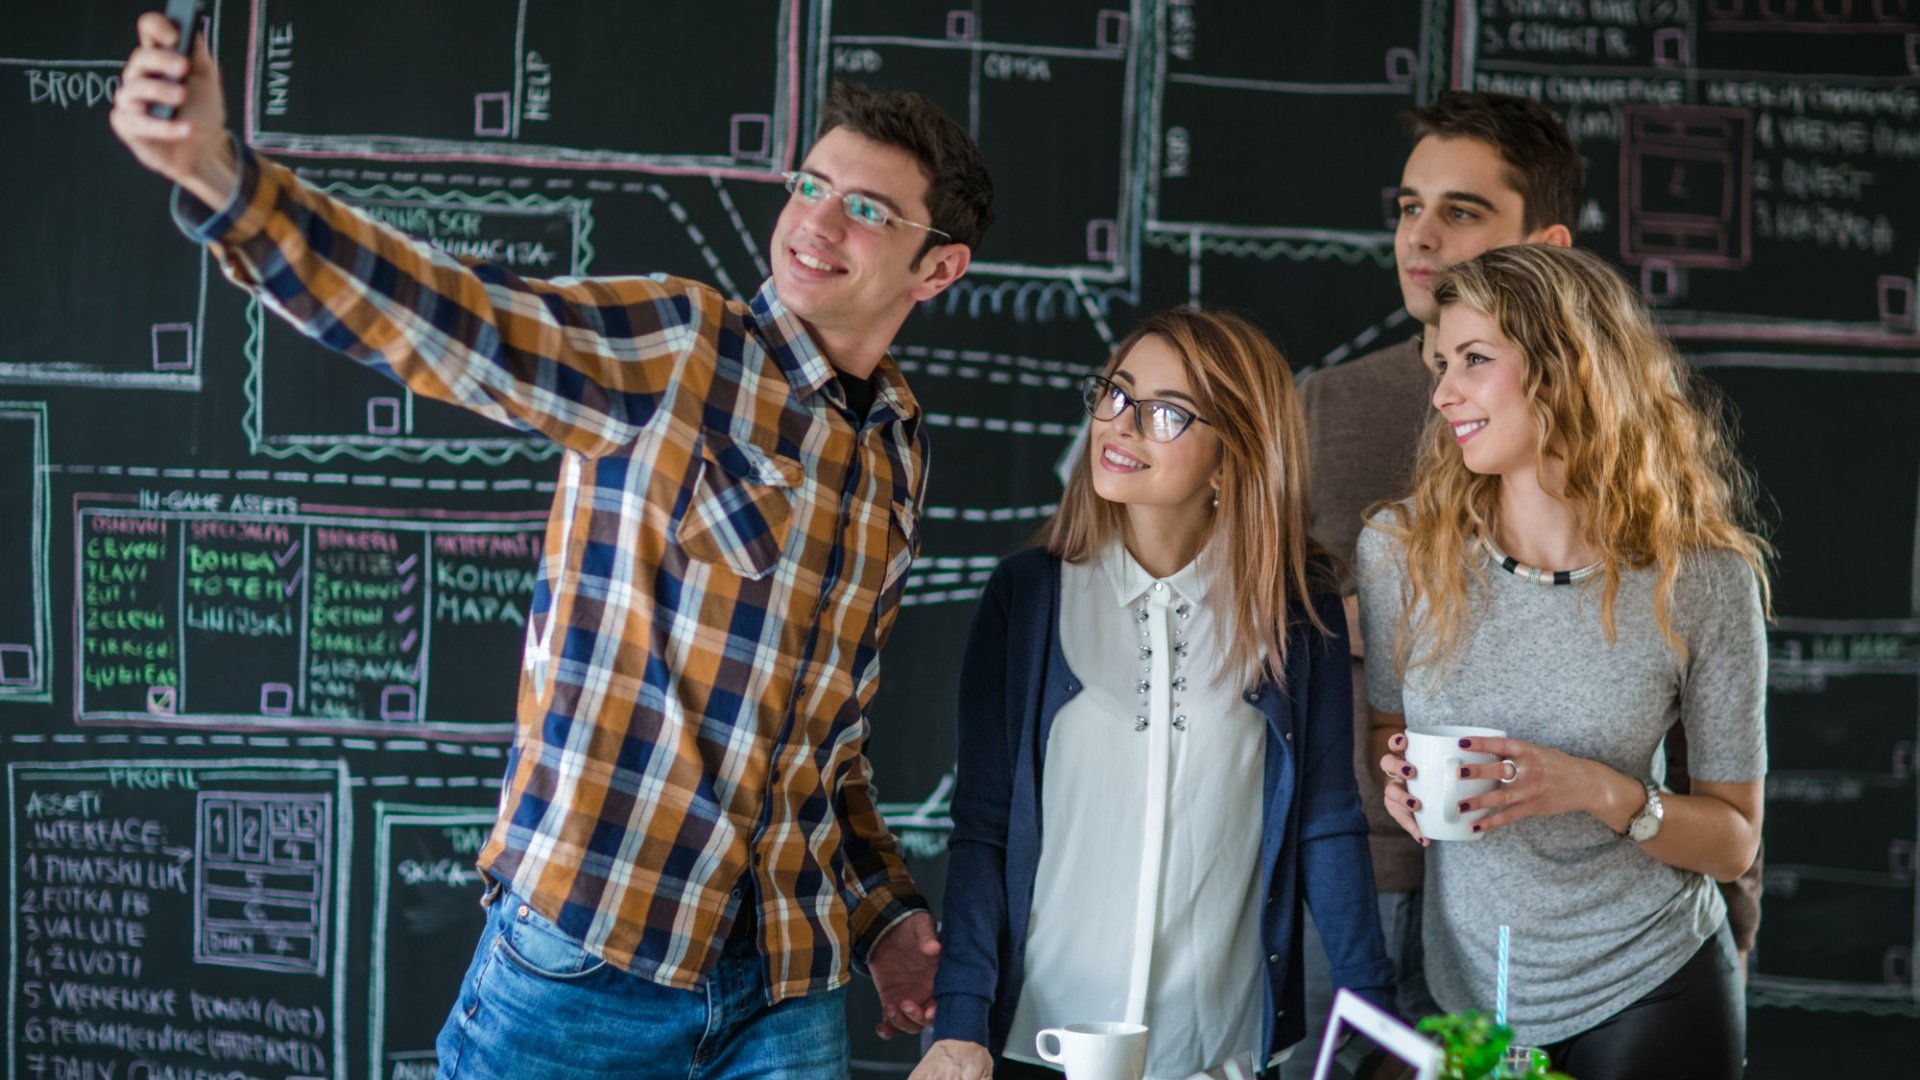 Want to Get in Front of More Millennials? Take a Page Out of The Onion's Playbook